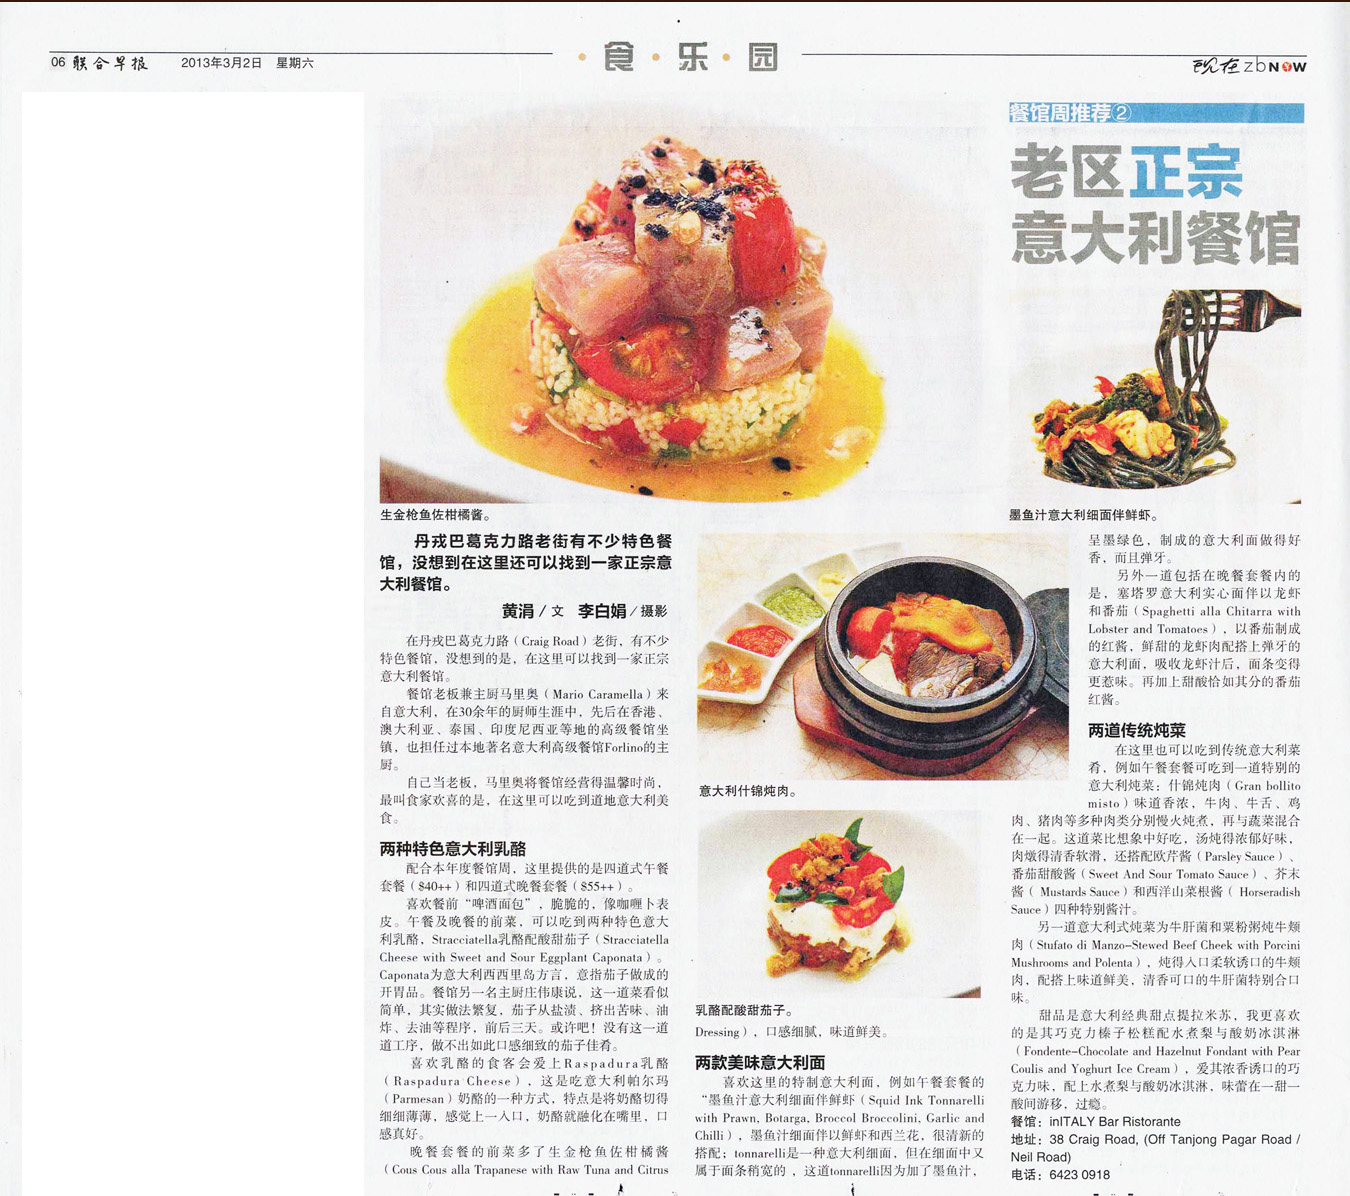 Lianhe Zaobao Now